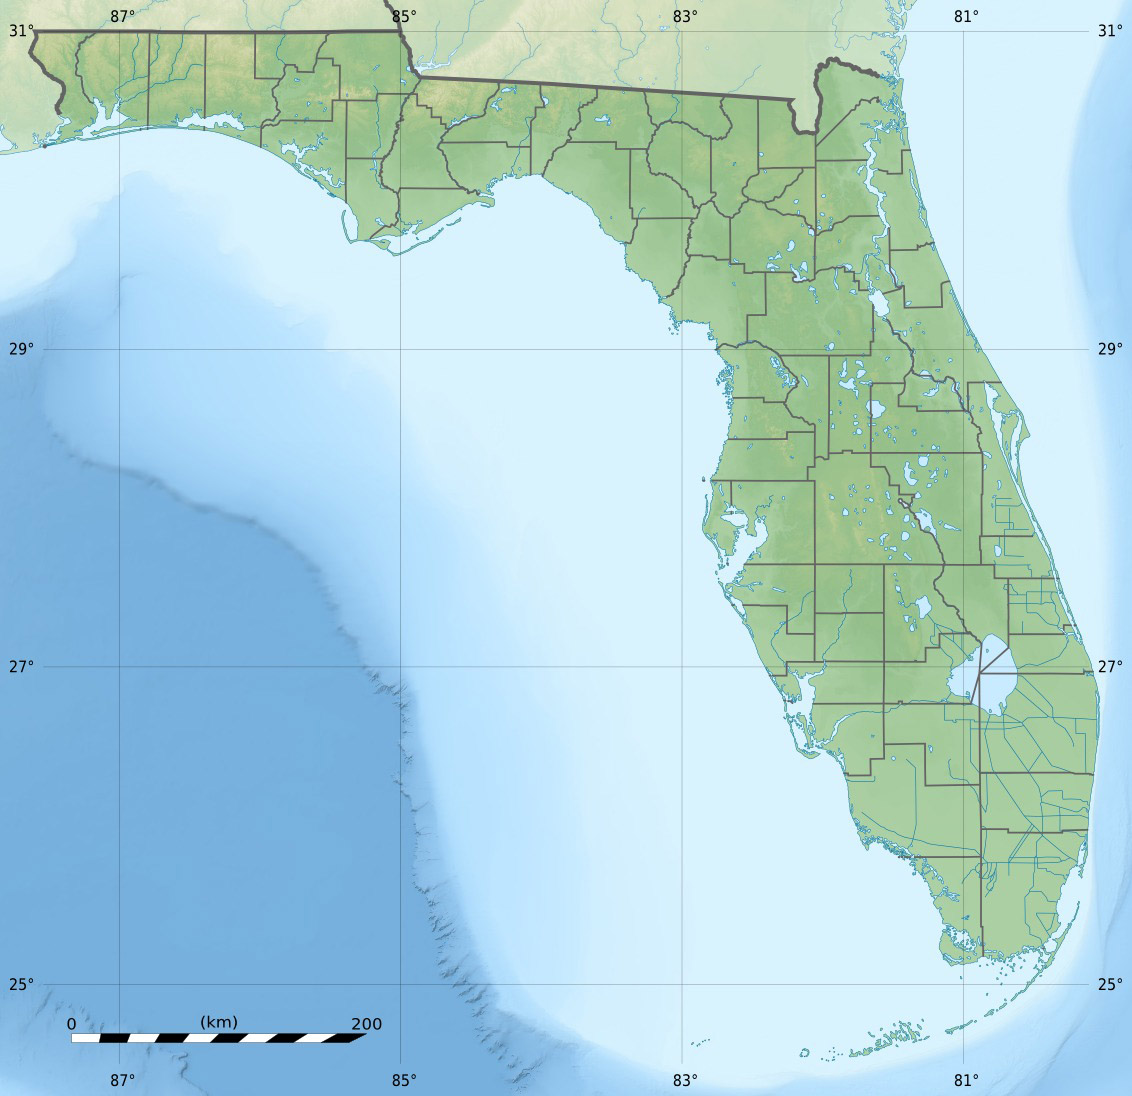 Northwest Florida Map.Northwest Florida Beaches International Airport Wikipedia